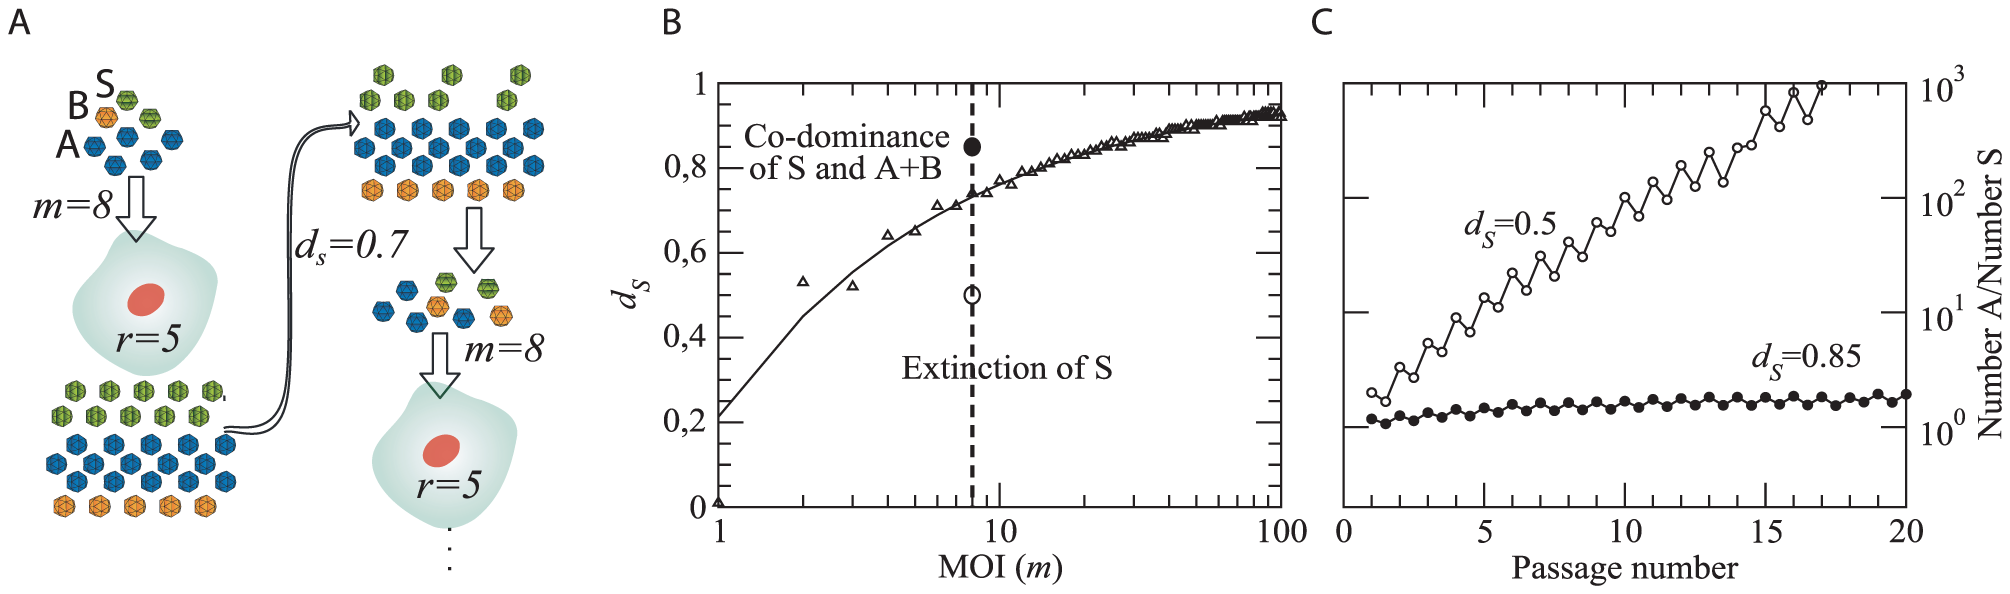 Computational model for the competition between ST and segmented forms.